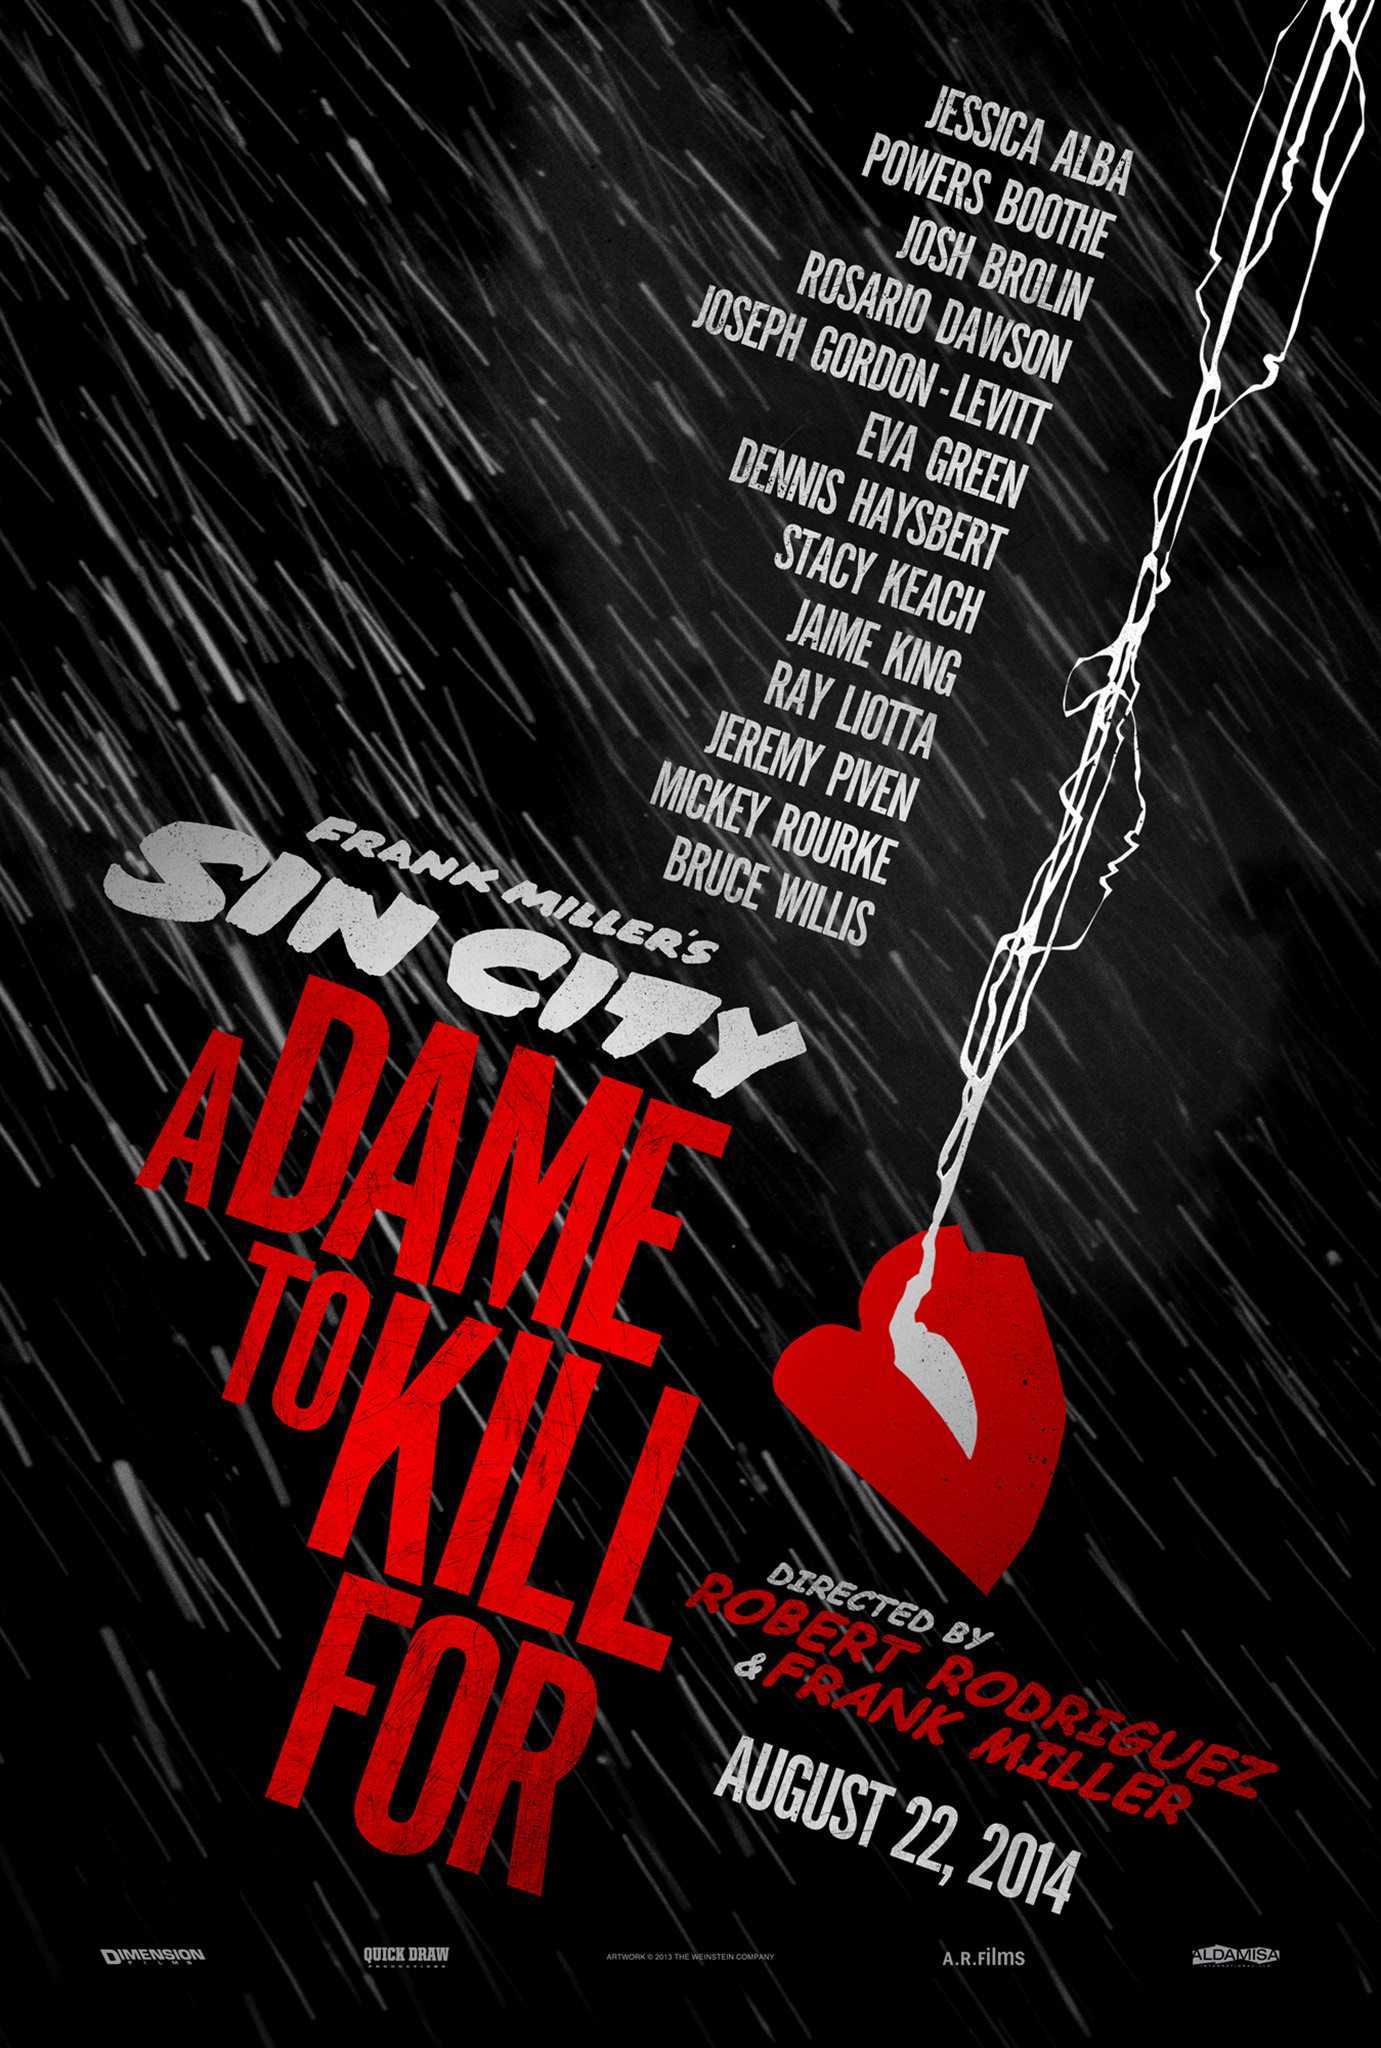 Sin City A Dame to Kill For Shows Its Dirty Dealings In New Trailer Sin City: A Dame to Kill For Shows Its Dirty Dealings In New Trailer